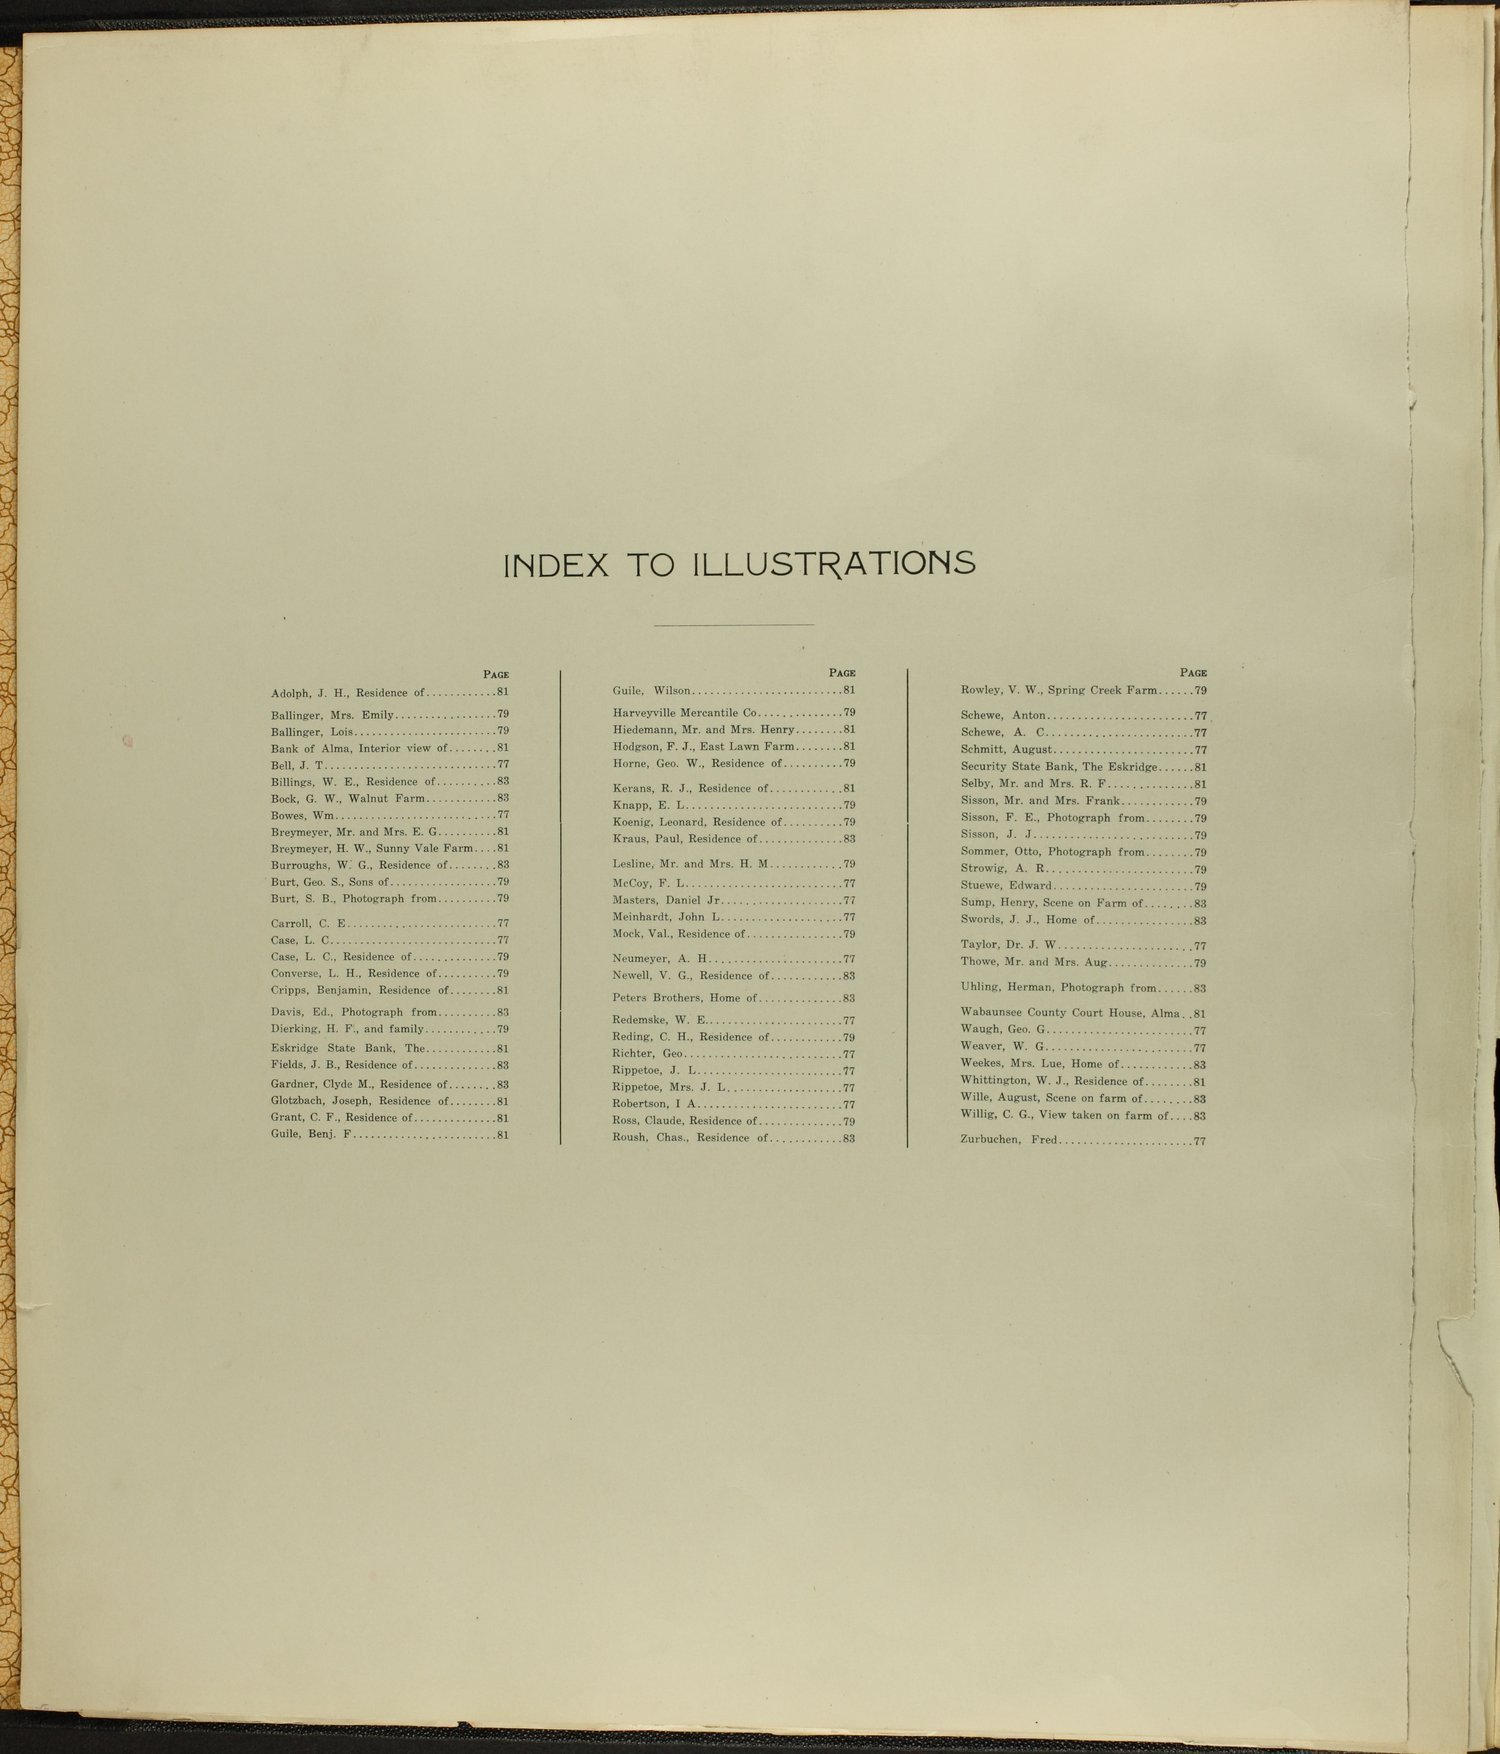 Standard atlas of Wabaunsee County, Kansas - Index to Illustrations